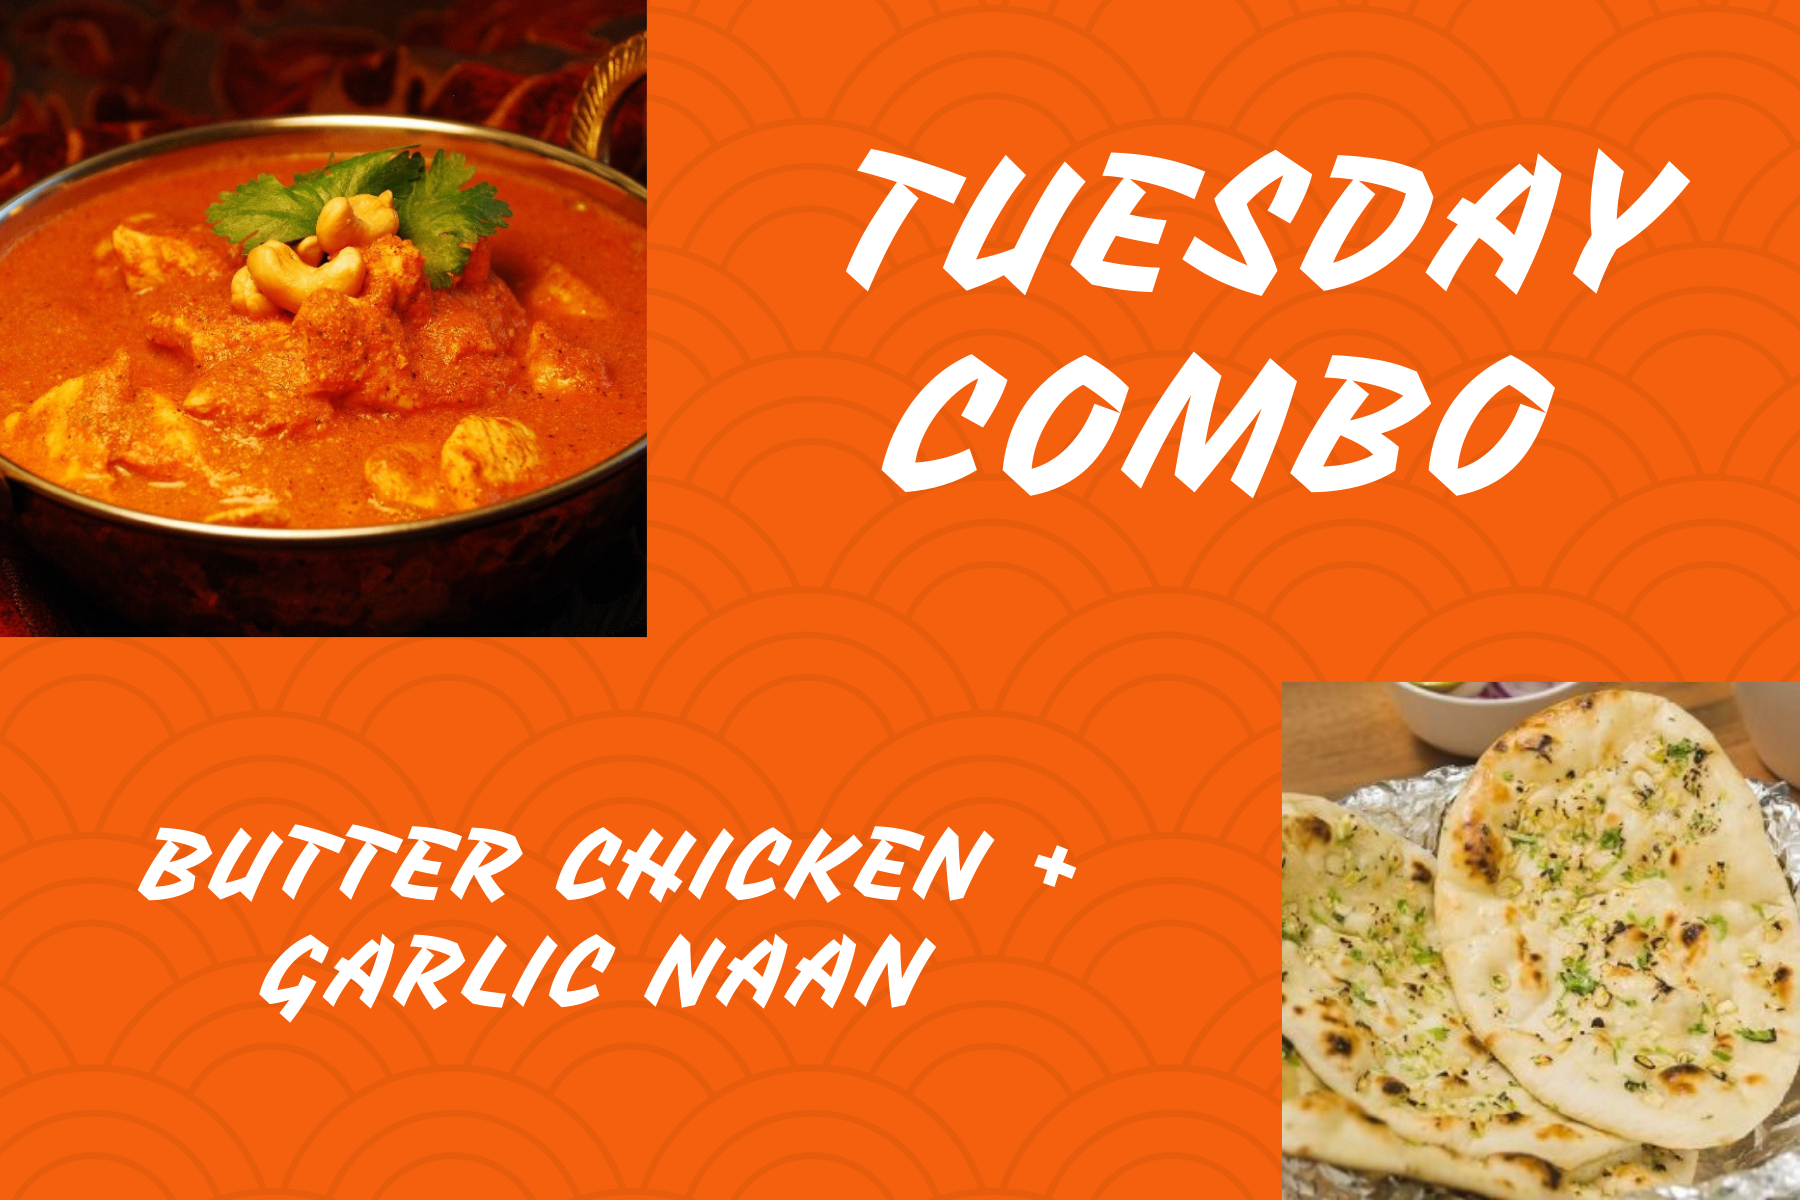 Tuesday Butter Chicken Combo Offer